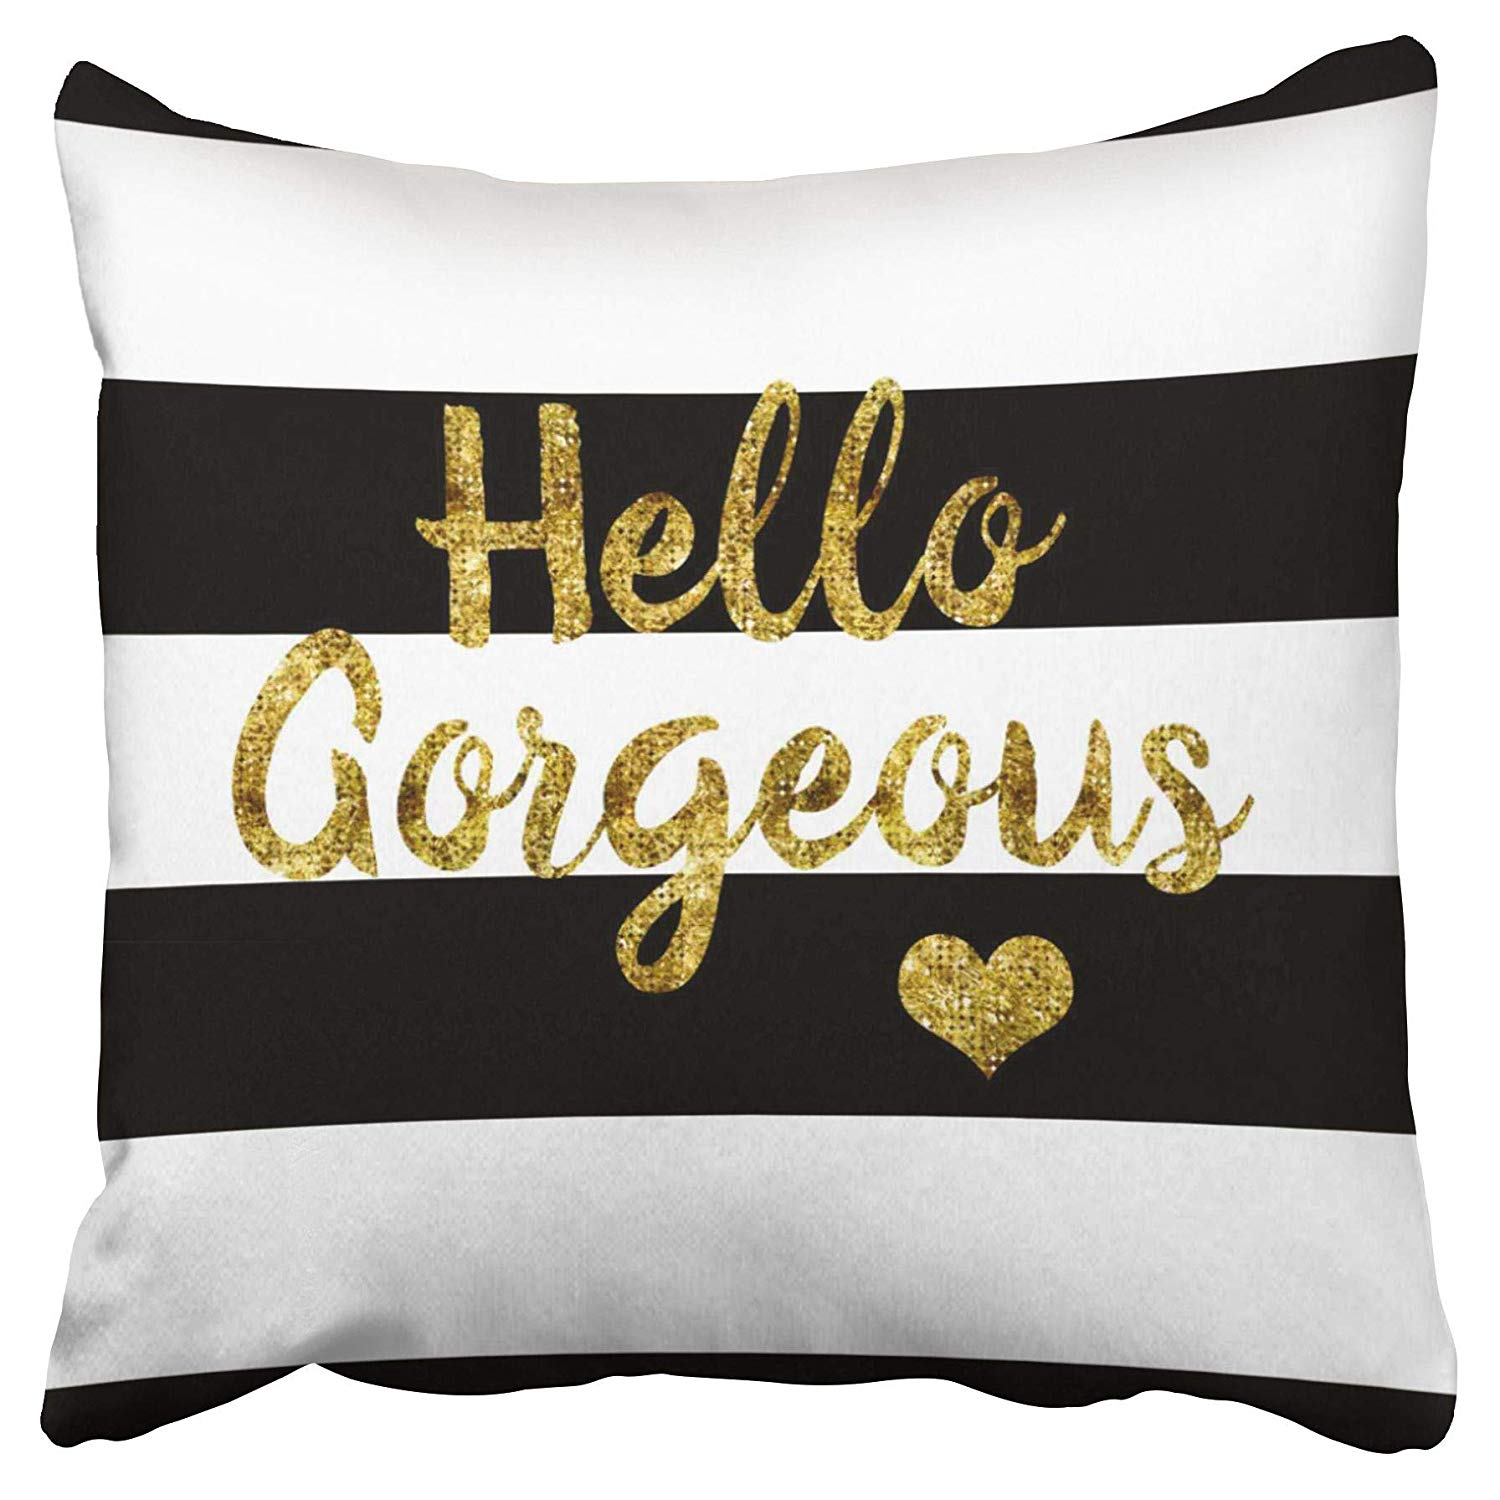 eccot hello gorgeous love black and white striped pillow case pillow cover 20x20 inch walmart com